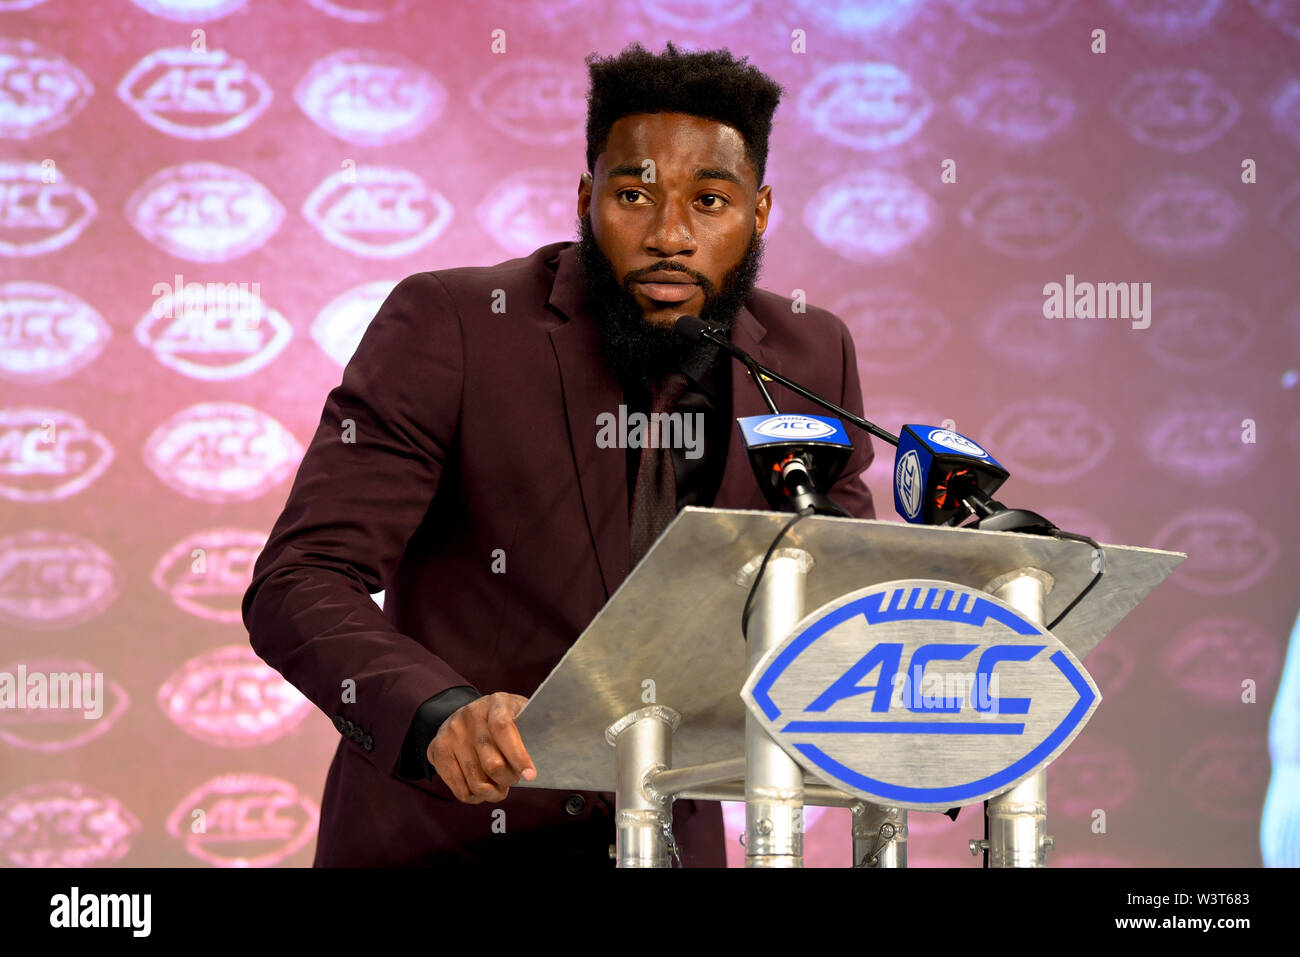 Charlotte, North Carolina, USA. 17th July, 2019. Florida State WR TAMDRRION TERRY speaking to reporters during the ACC Atlantic Division Coach/Student interviews on July 17, 2019 at the Westin Hotels & Resorts in Charlotte, N.C. Credit: Ed Clemente/ZUMA Wire/Alamy Live News - Stock Image